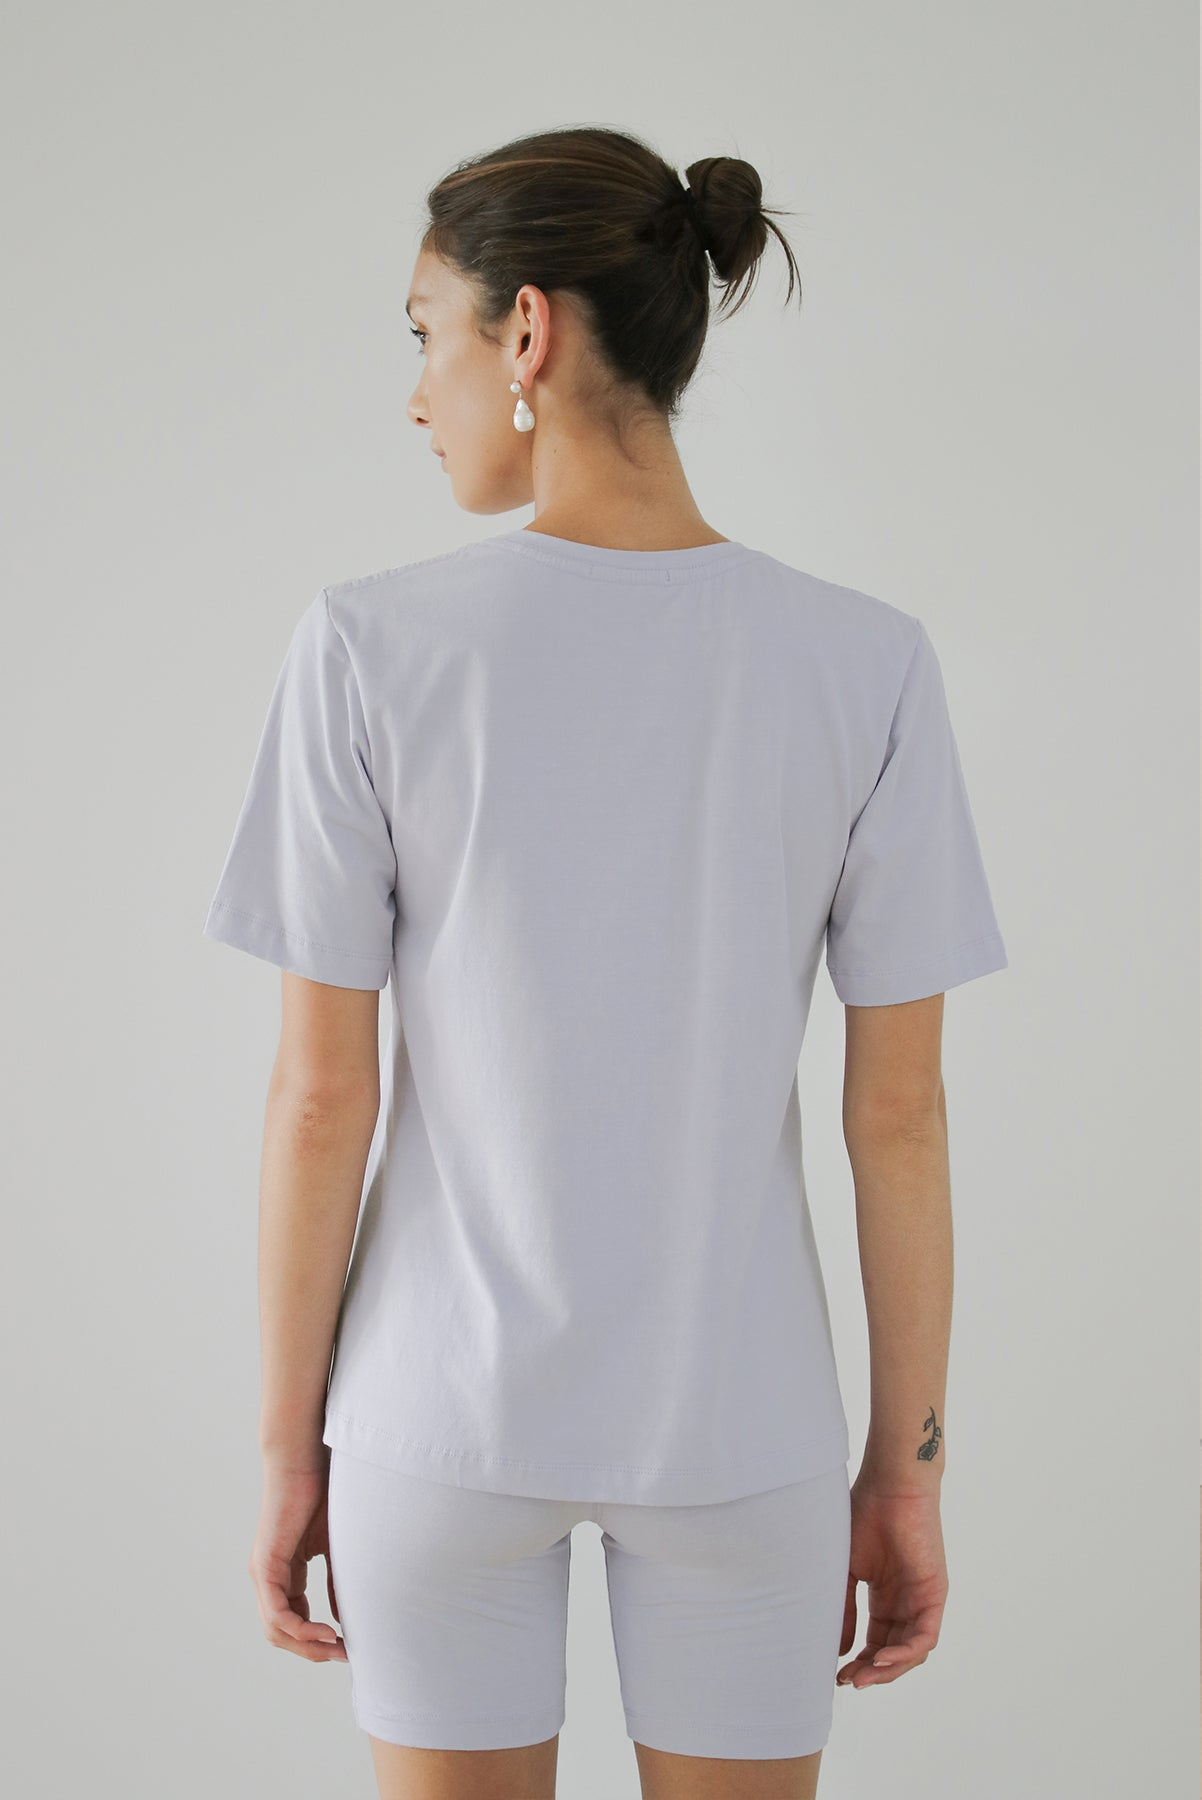 Solar Powered T-shirt - Marshmallow - LOCLAIRE